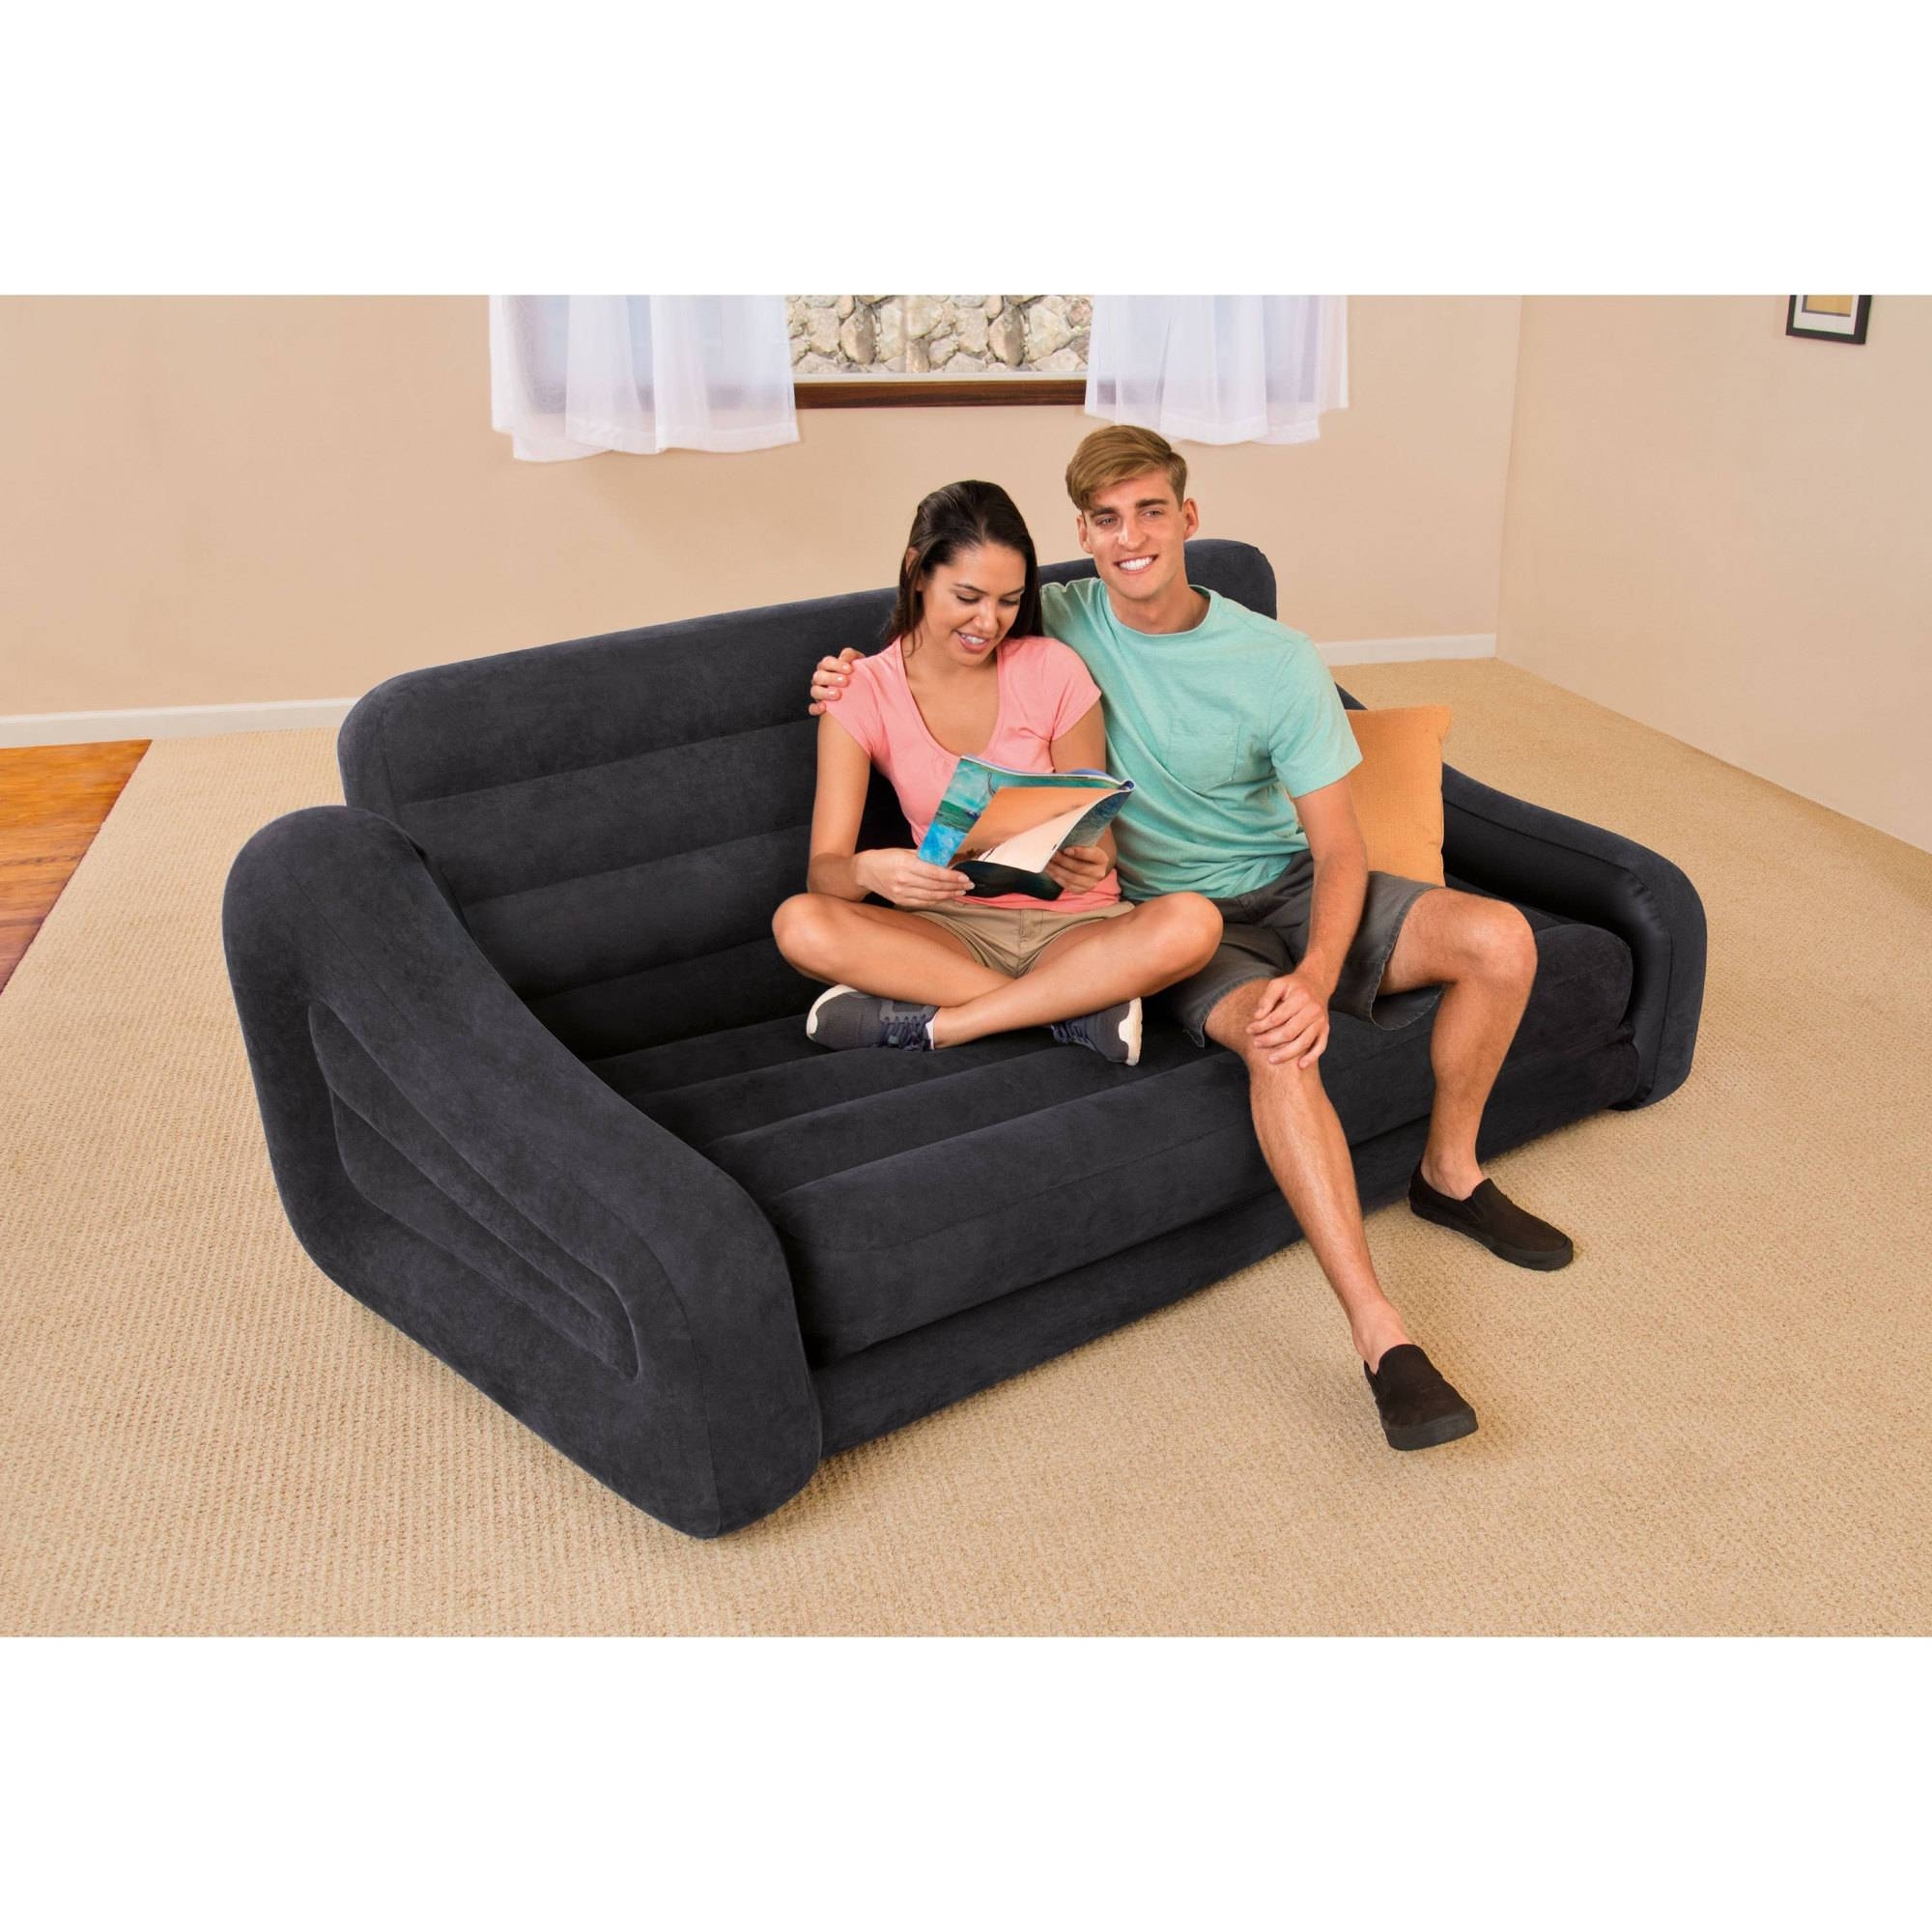 Intex Queen Inflatable Pull Out Sofa Bed – Walmart For Intex Air Sofa Beds (View 12 of 15)